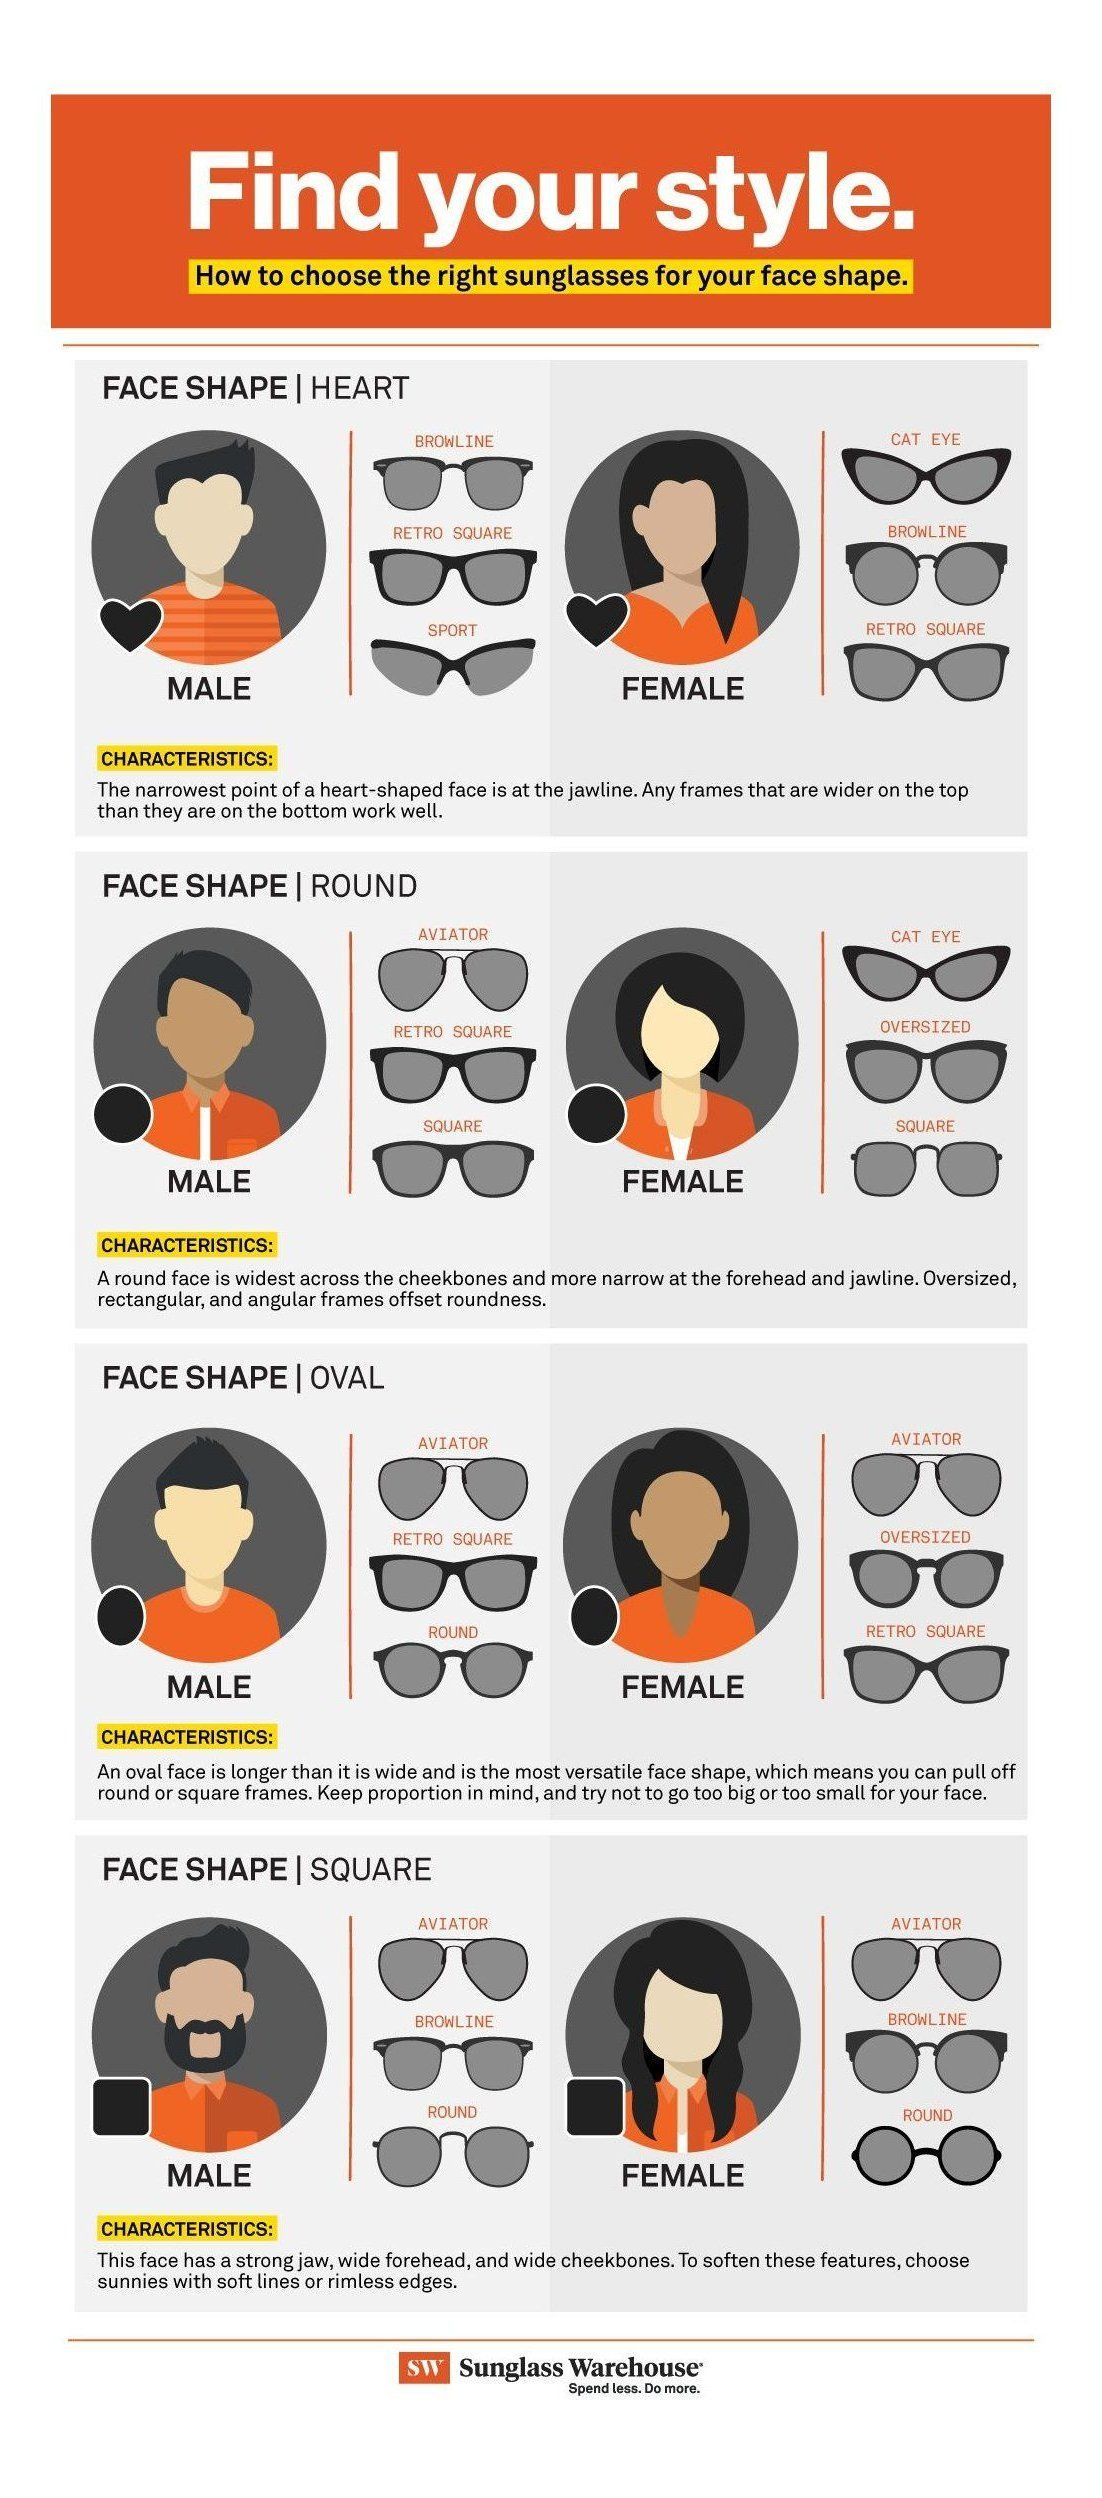 Pin By Samaral7rbi On أشكال الوجه Face Shape Sunglasses Glasses For Your Face Shape Womens Sunglasses Face Shape